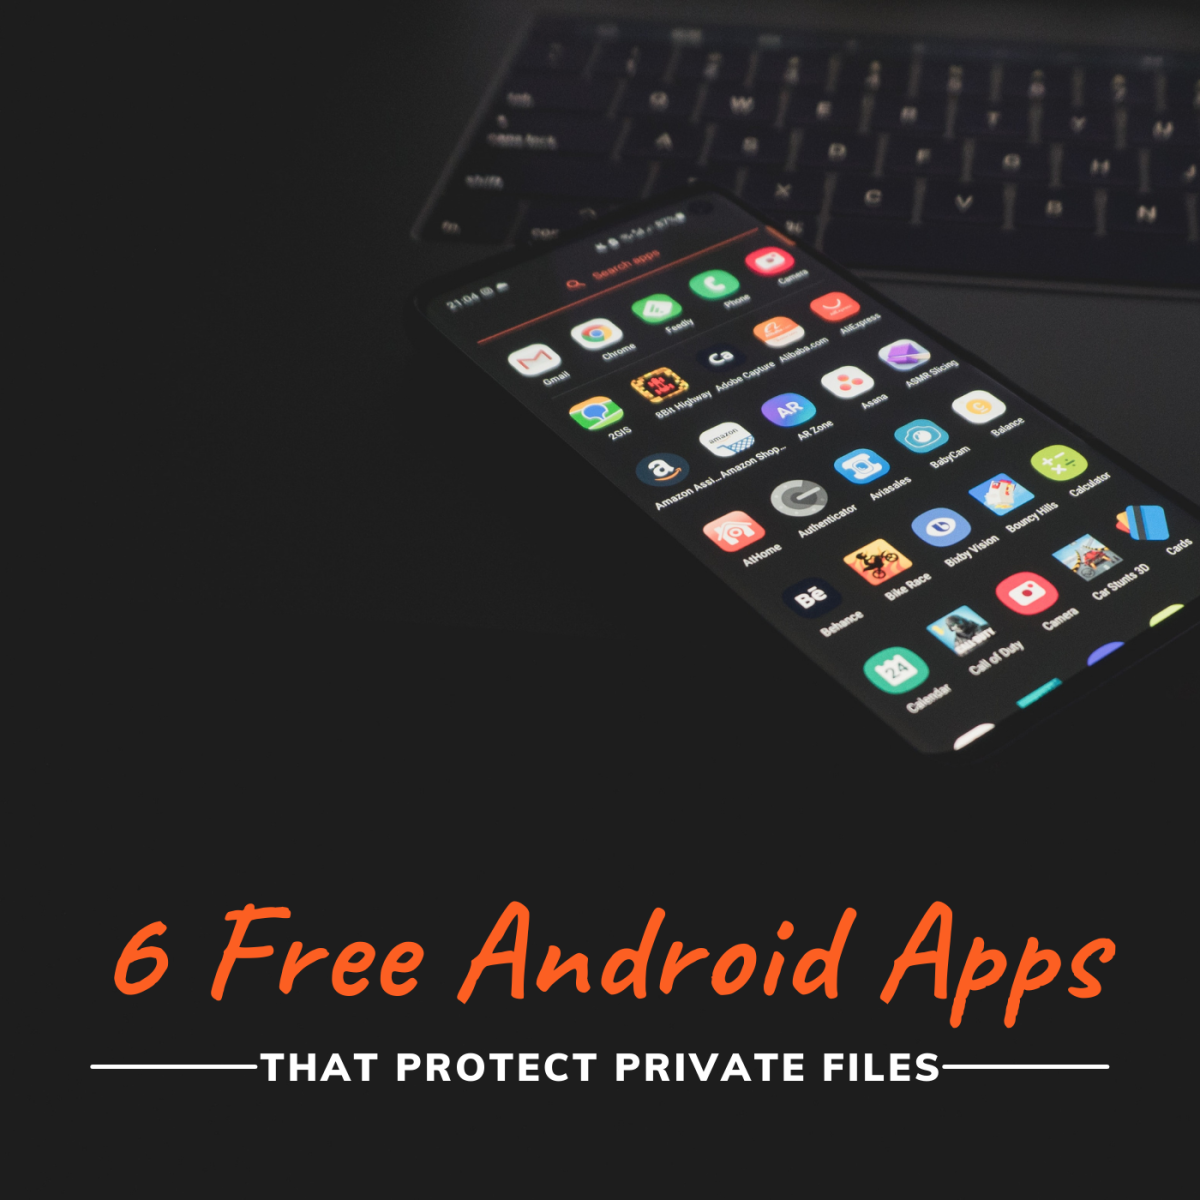 These free apps can keep your private media safe and secure on your Android phone.